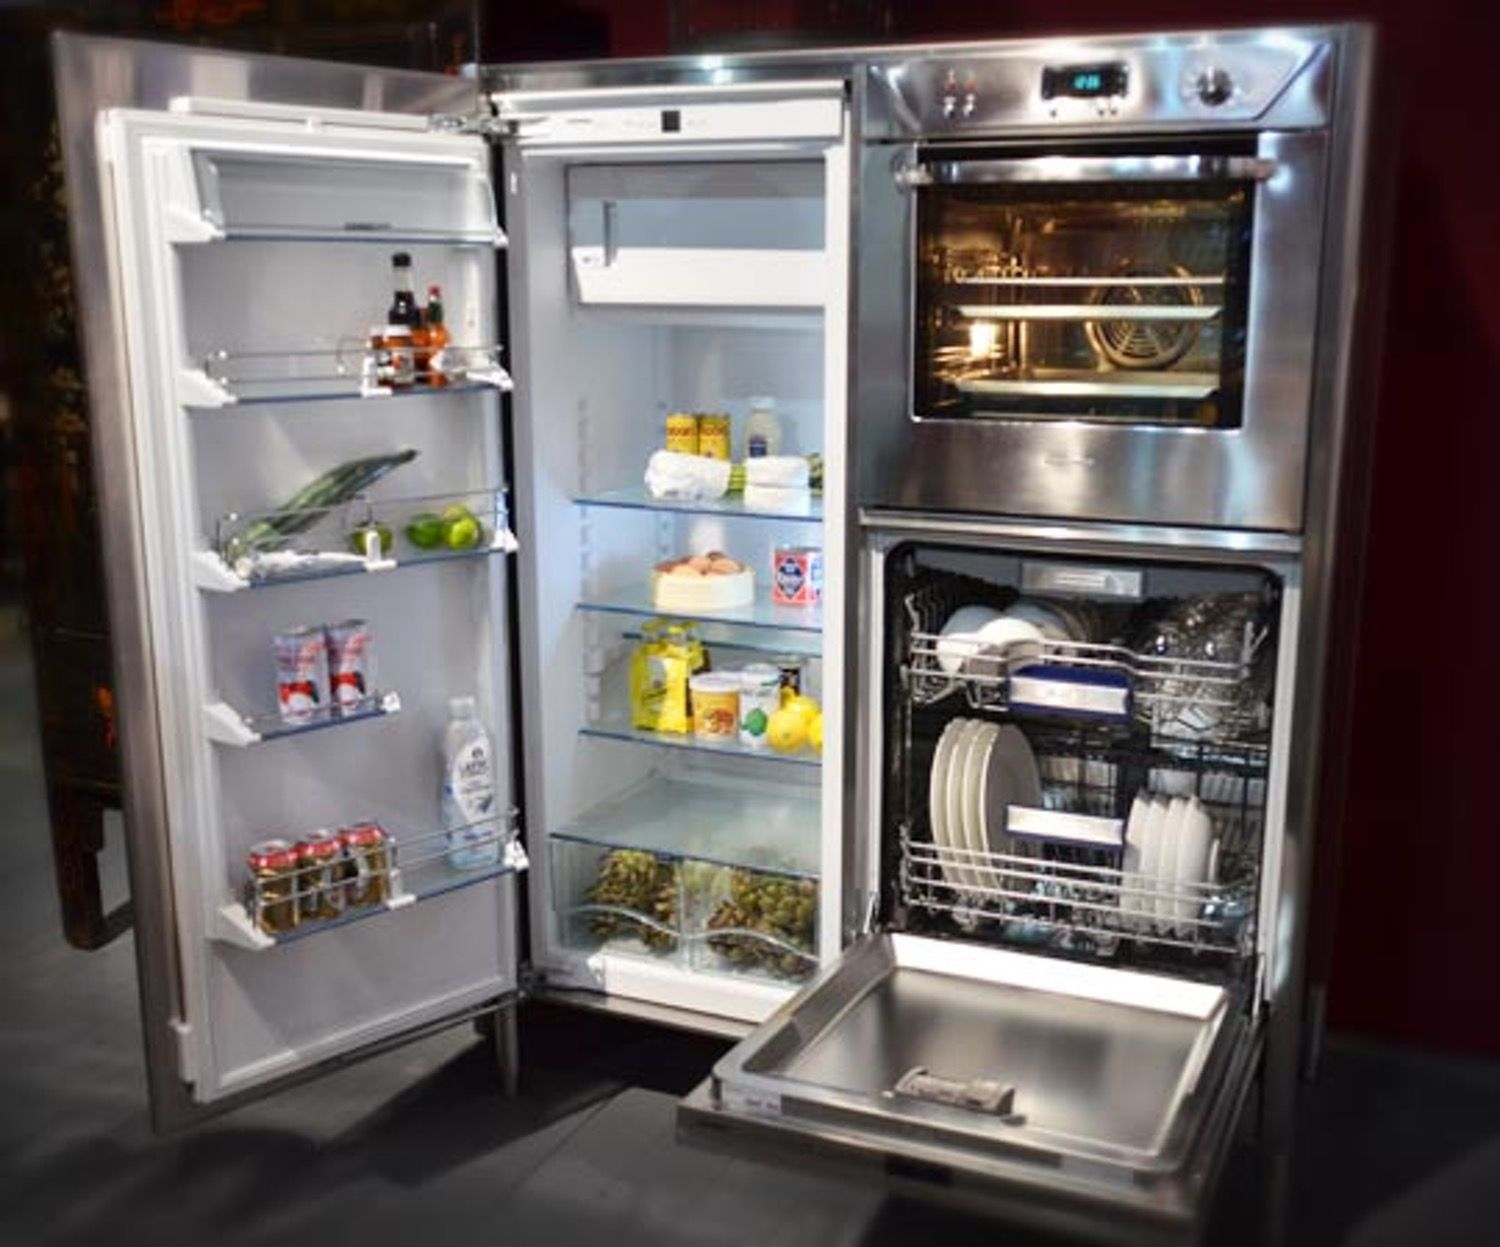 Combination Refrigerator, Dishwasher, & Oven Unit from